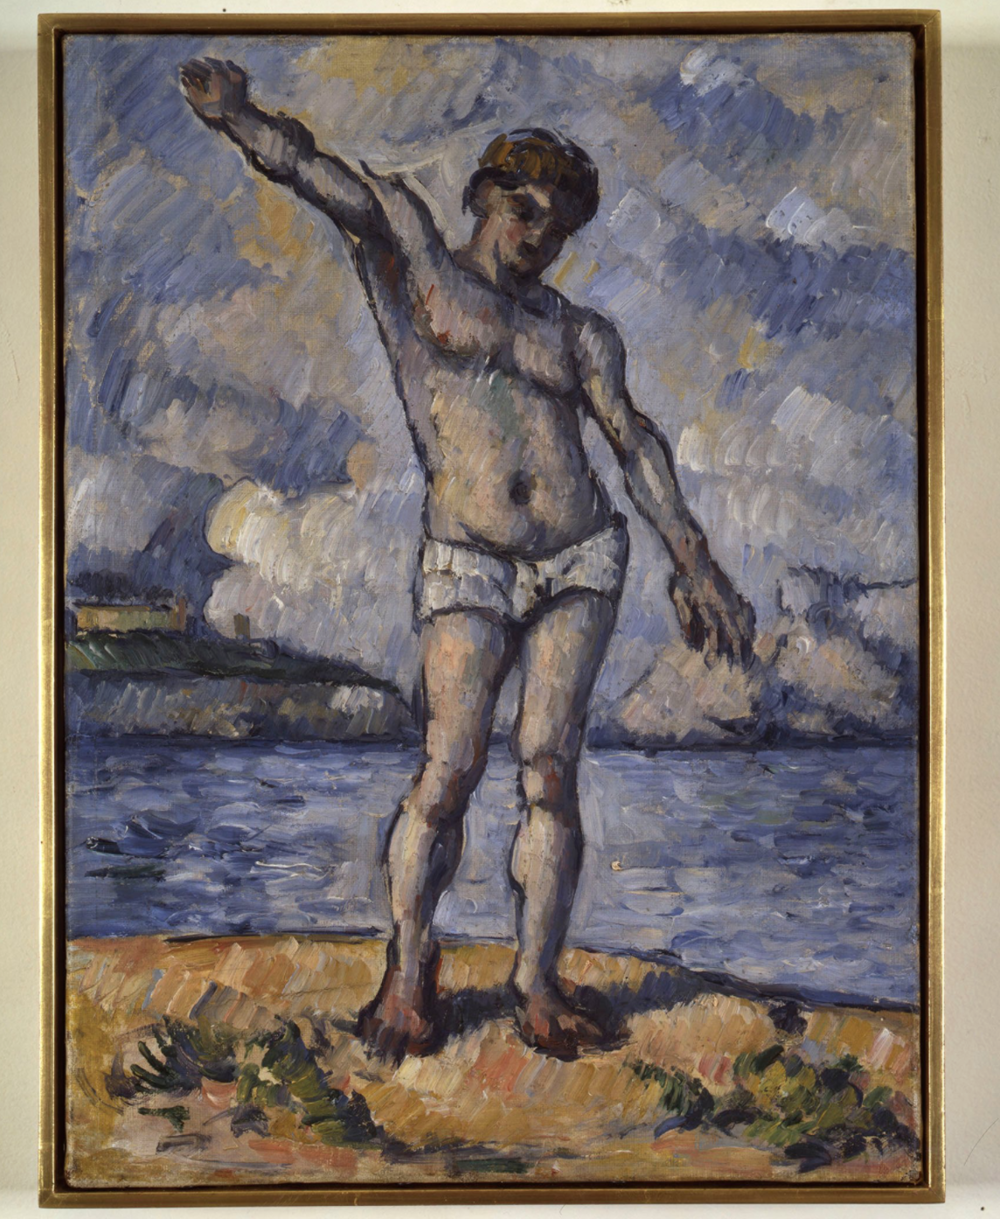 Bather with Outstretched Arm (Study), 1883-85 by Cézanne, owned by Edgar Degas, purchased in 1895 at Vollard's gallery.